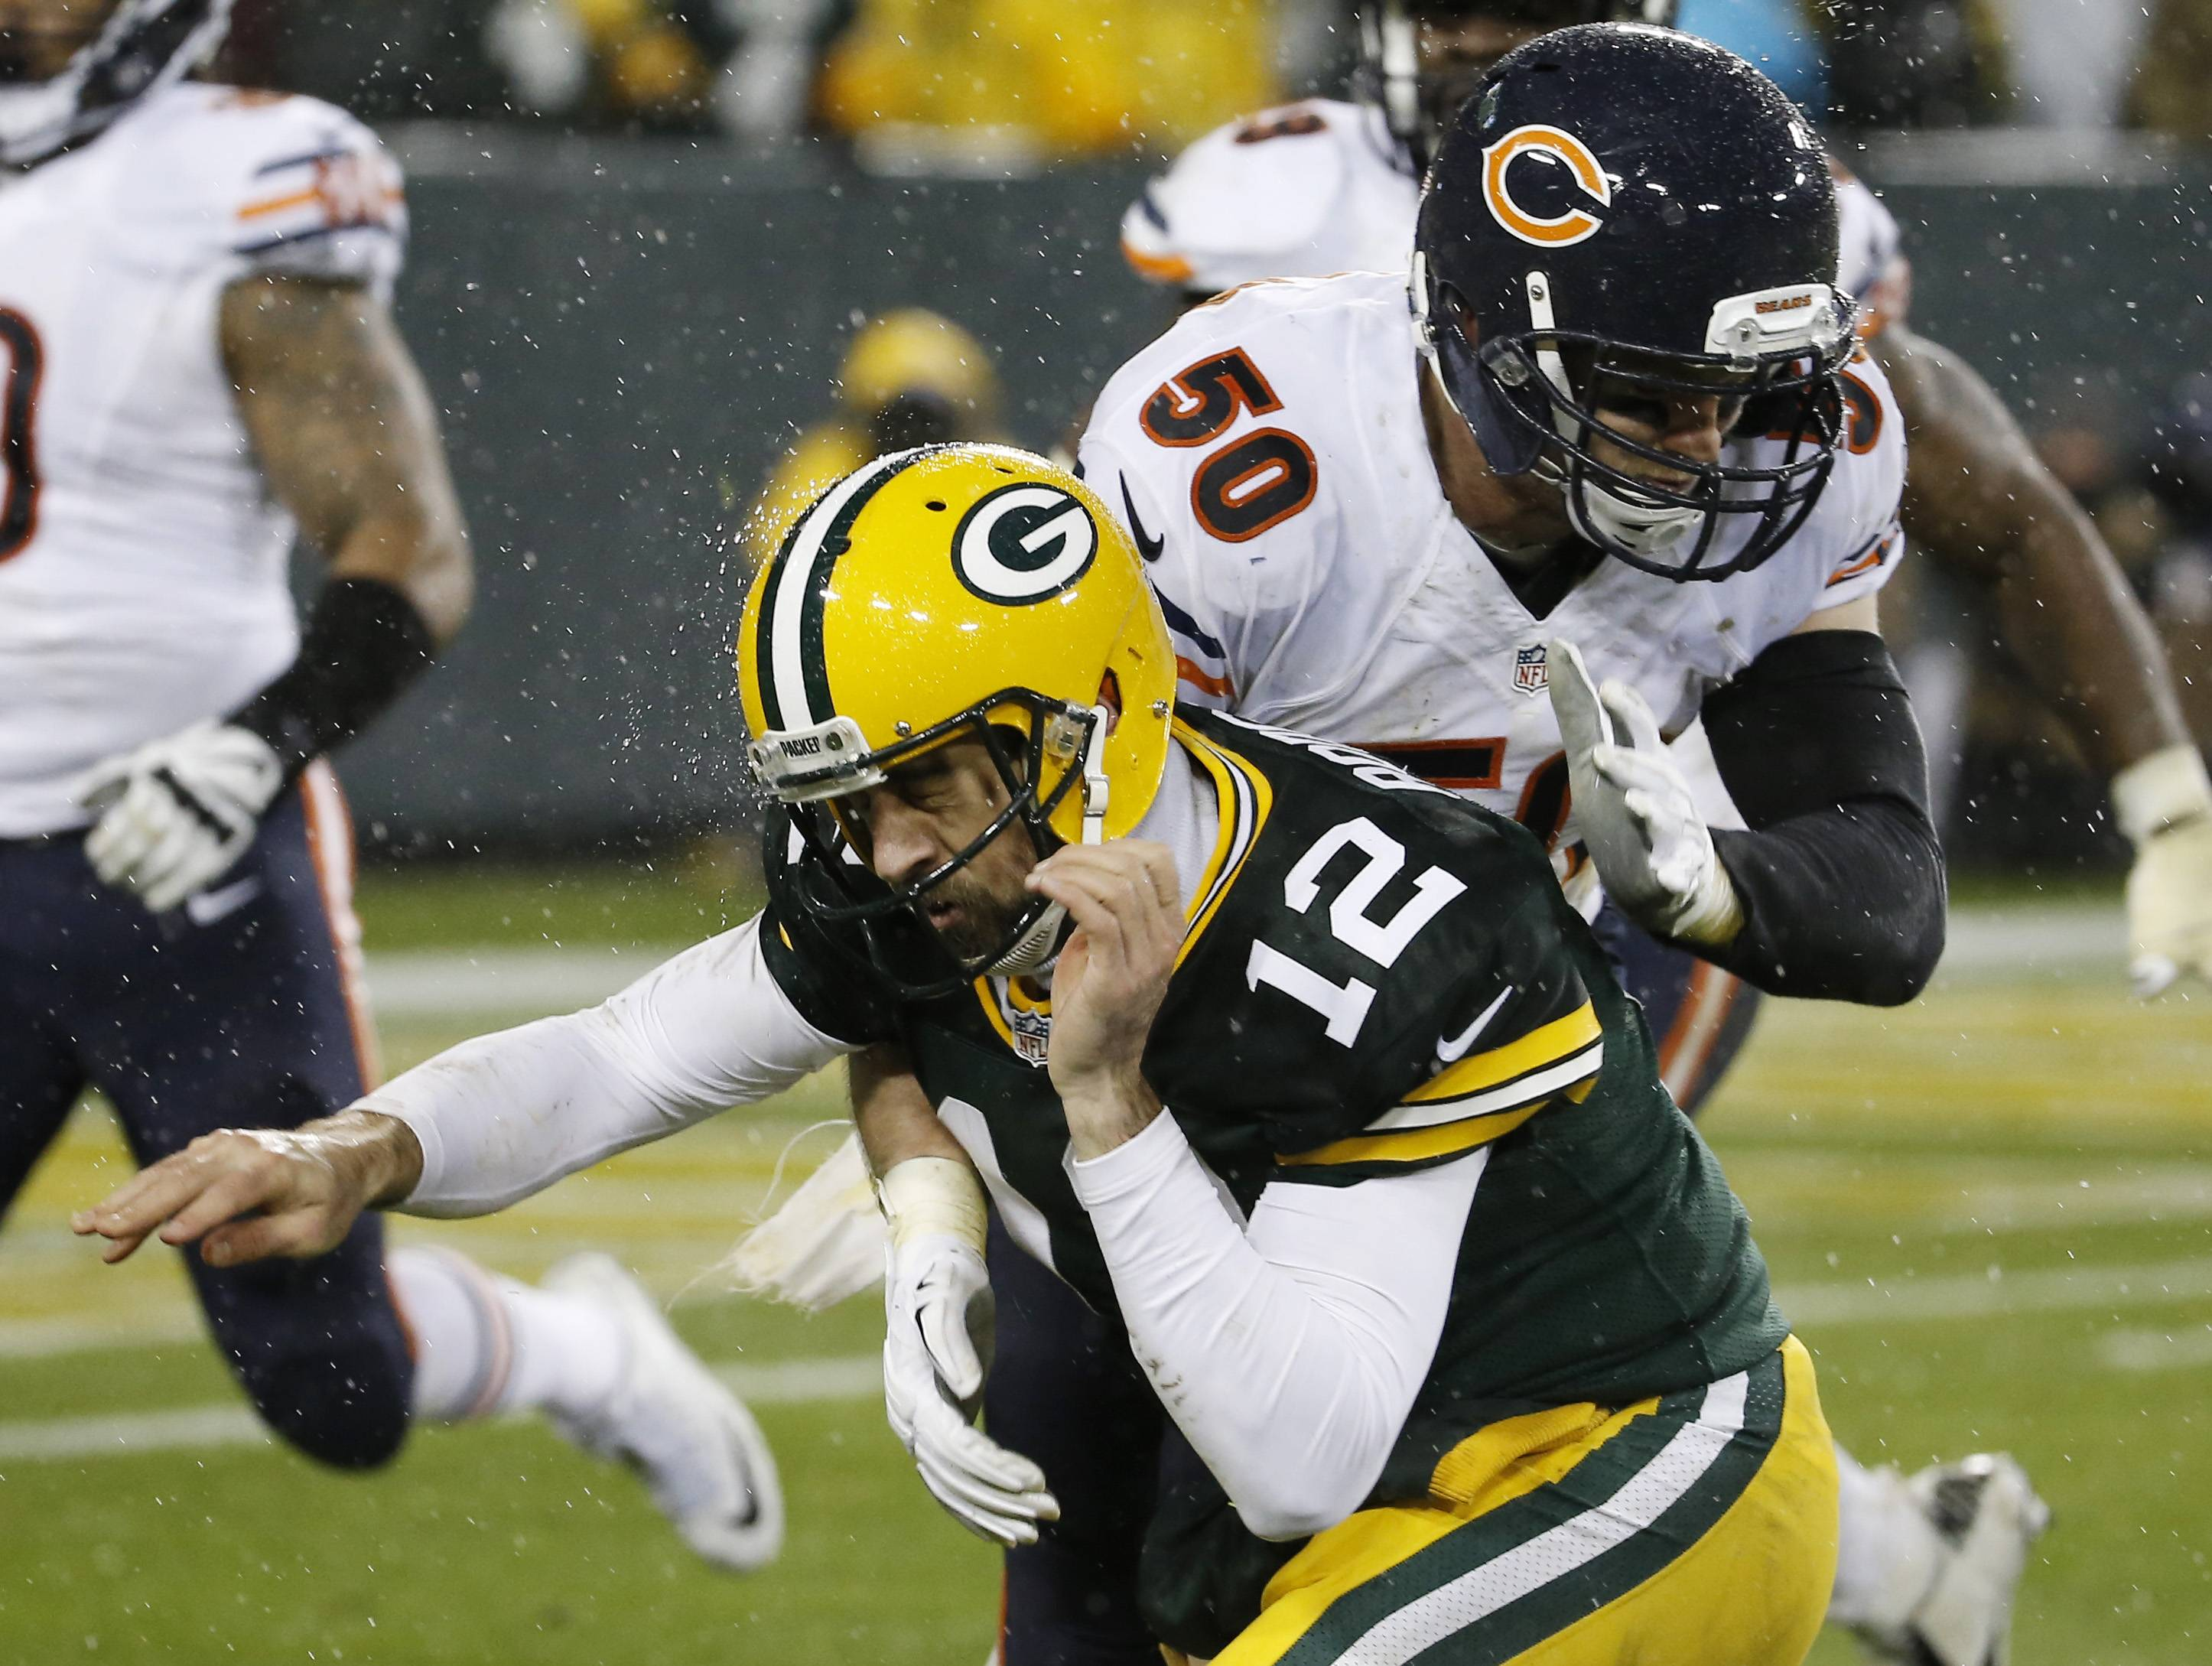 Green Bay Packers' Aaron Rodgers is hit by Bears' Shea McClellin after throwing a pass on Thursday in Green Bay, Wis.